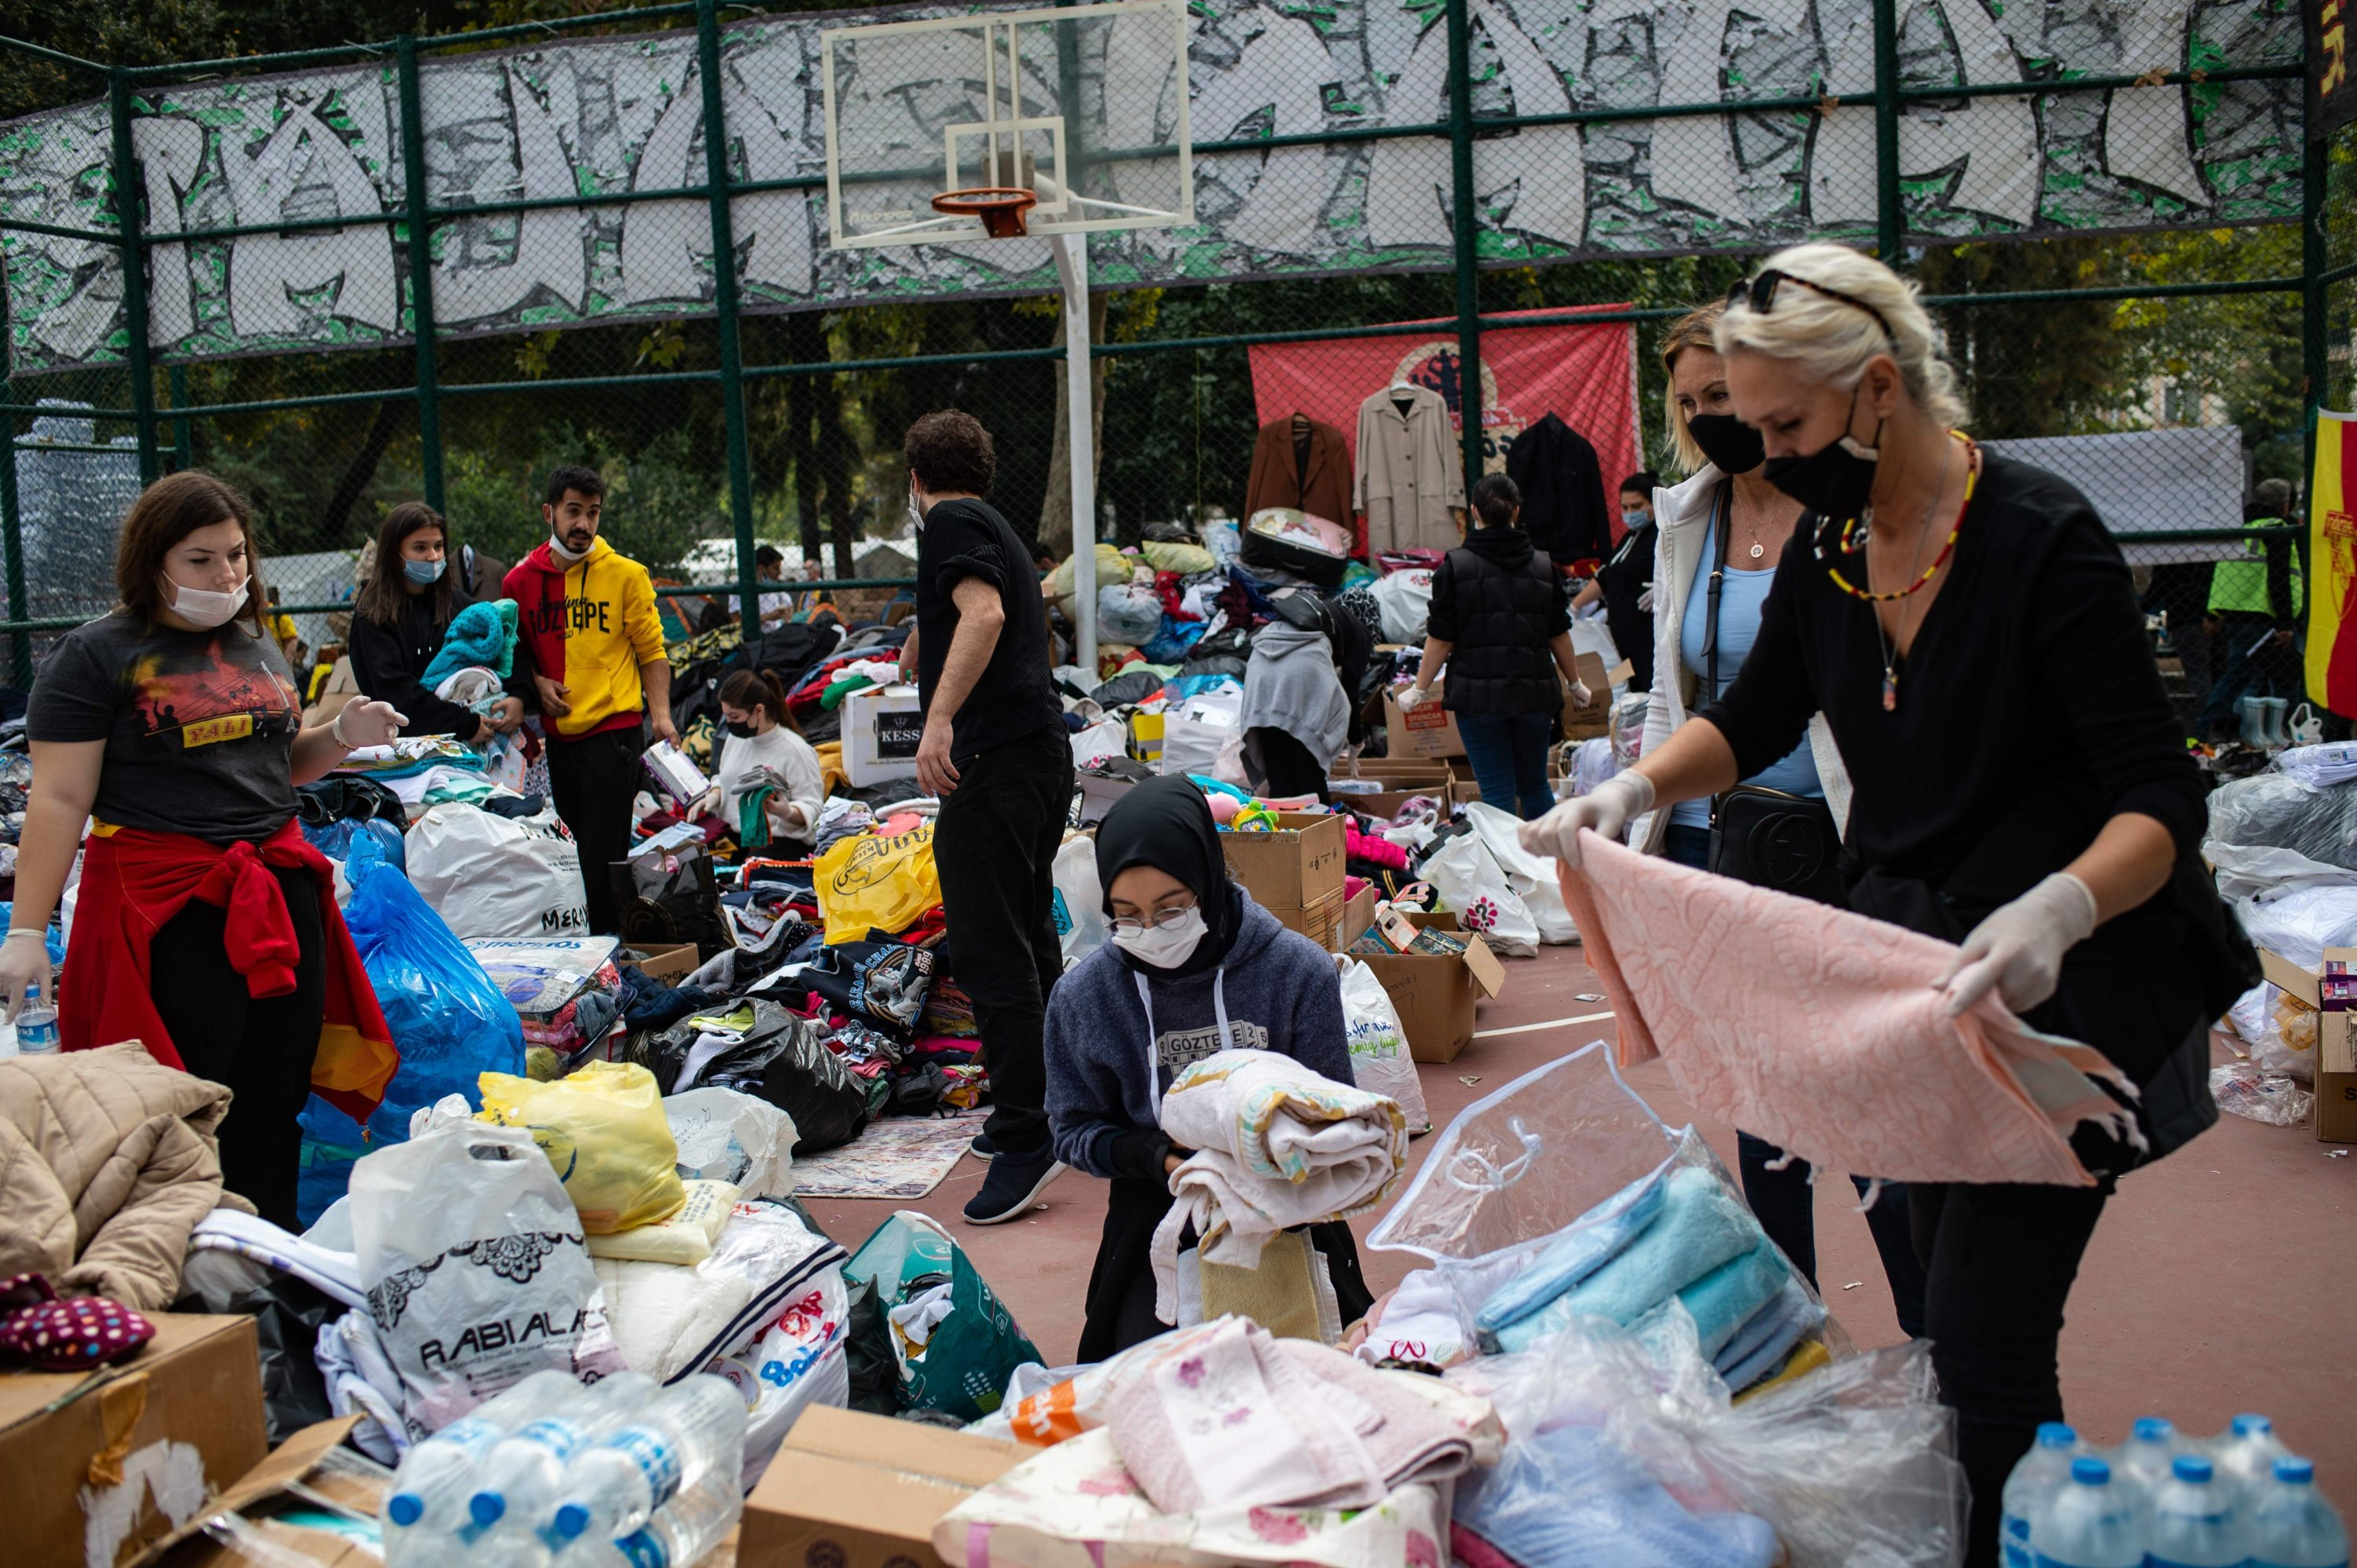 Food and clothing aid for survivors are collected at a basketball court in the city of Izmir after an earthquake struck the coastal province of Izmir, Turkey, Nov. 3, 2020. (AFP Photo)